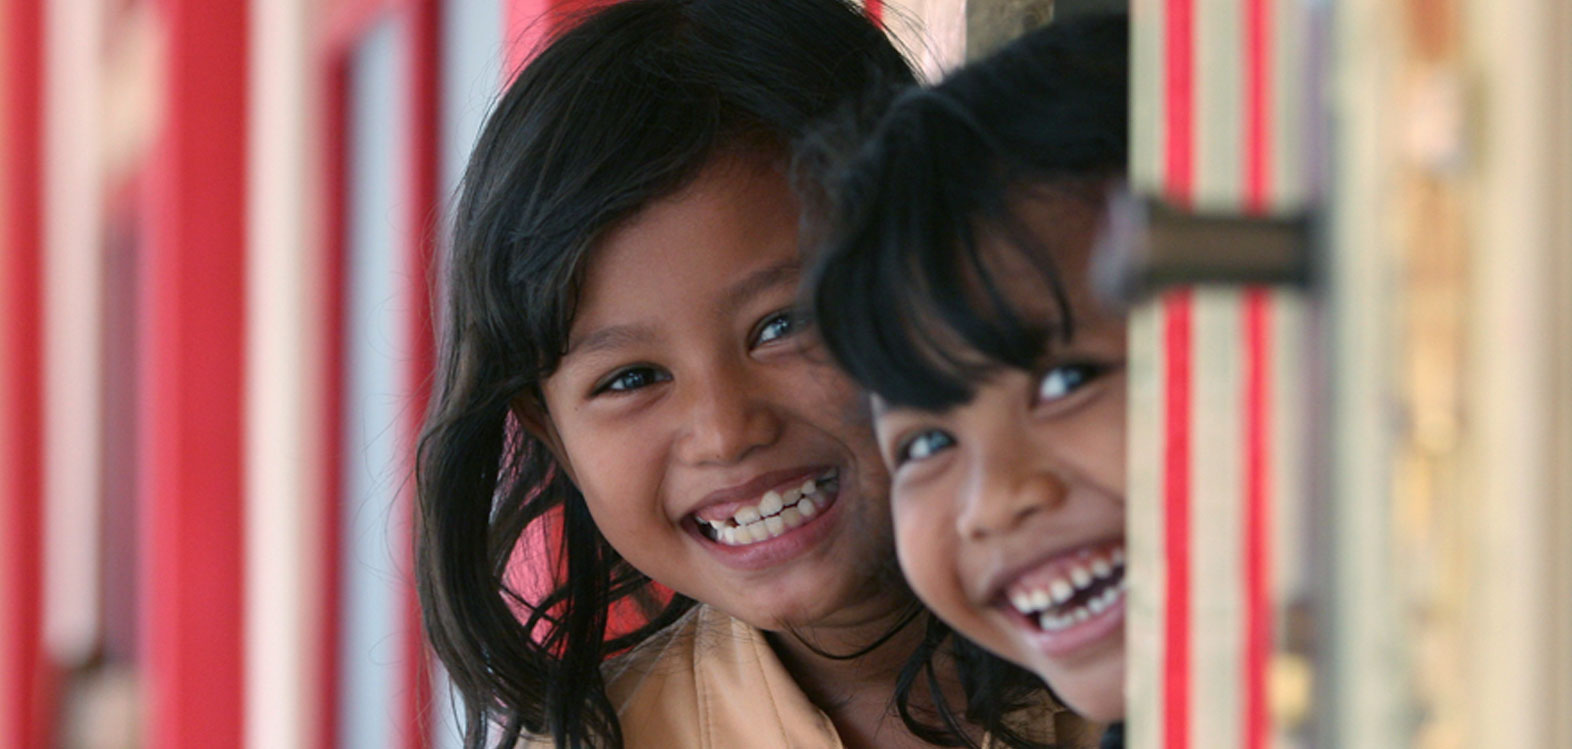 UNICEF in Indonesia